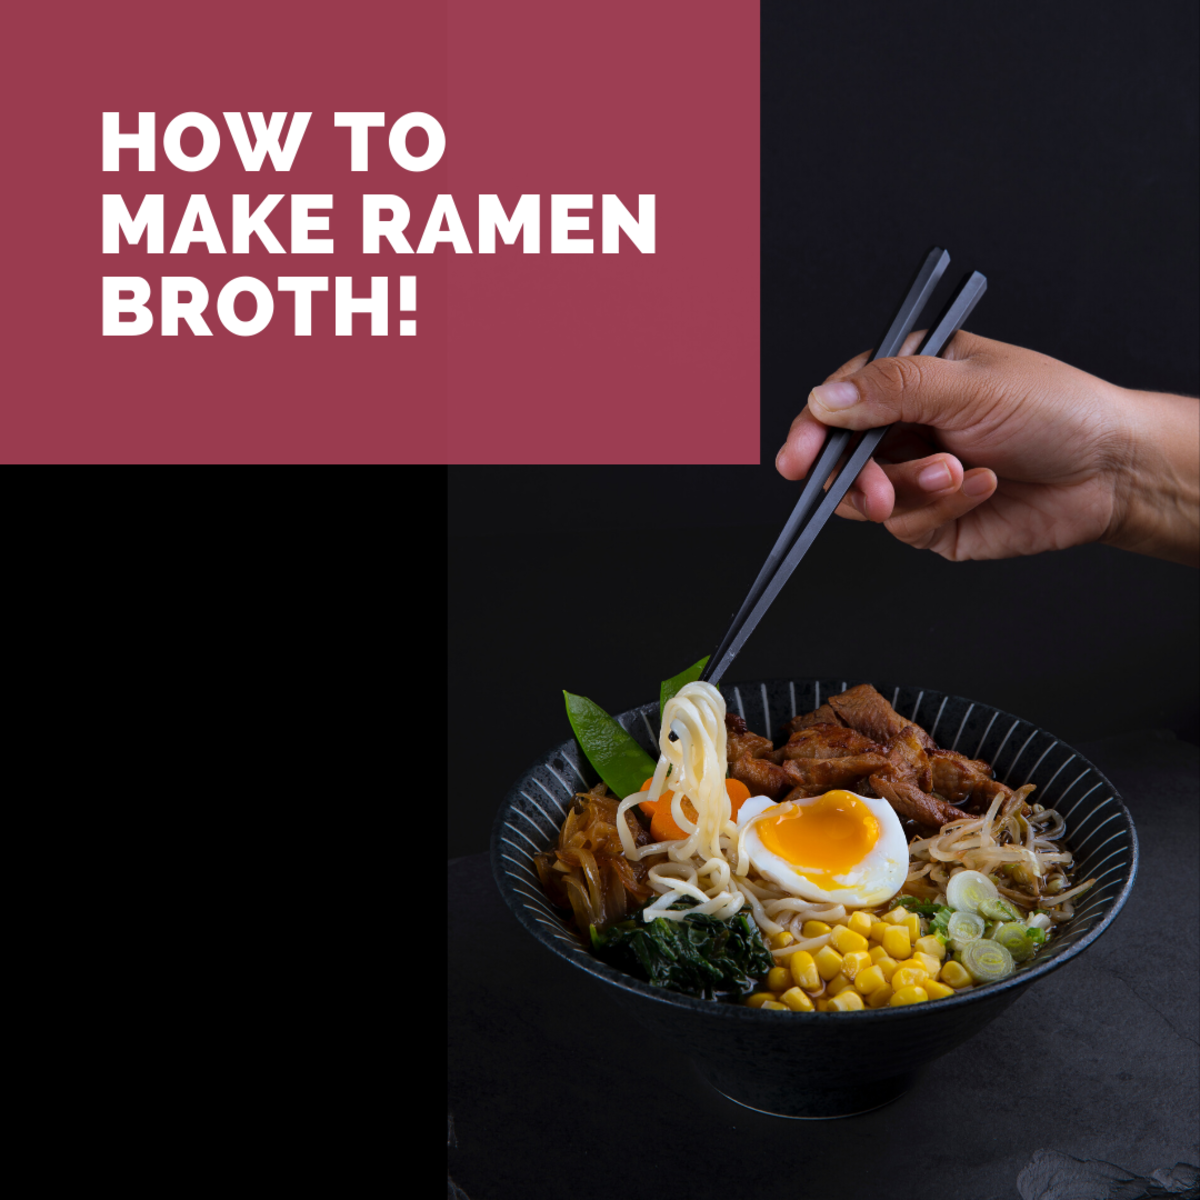 Make your own ramen broth and save money!